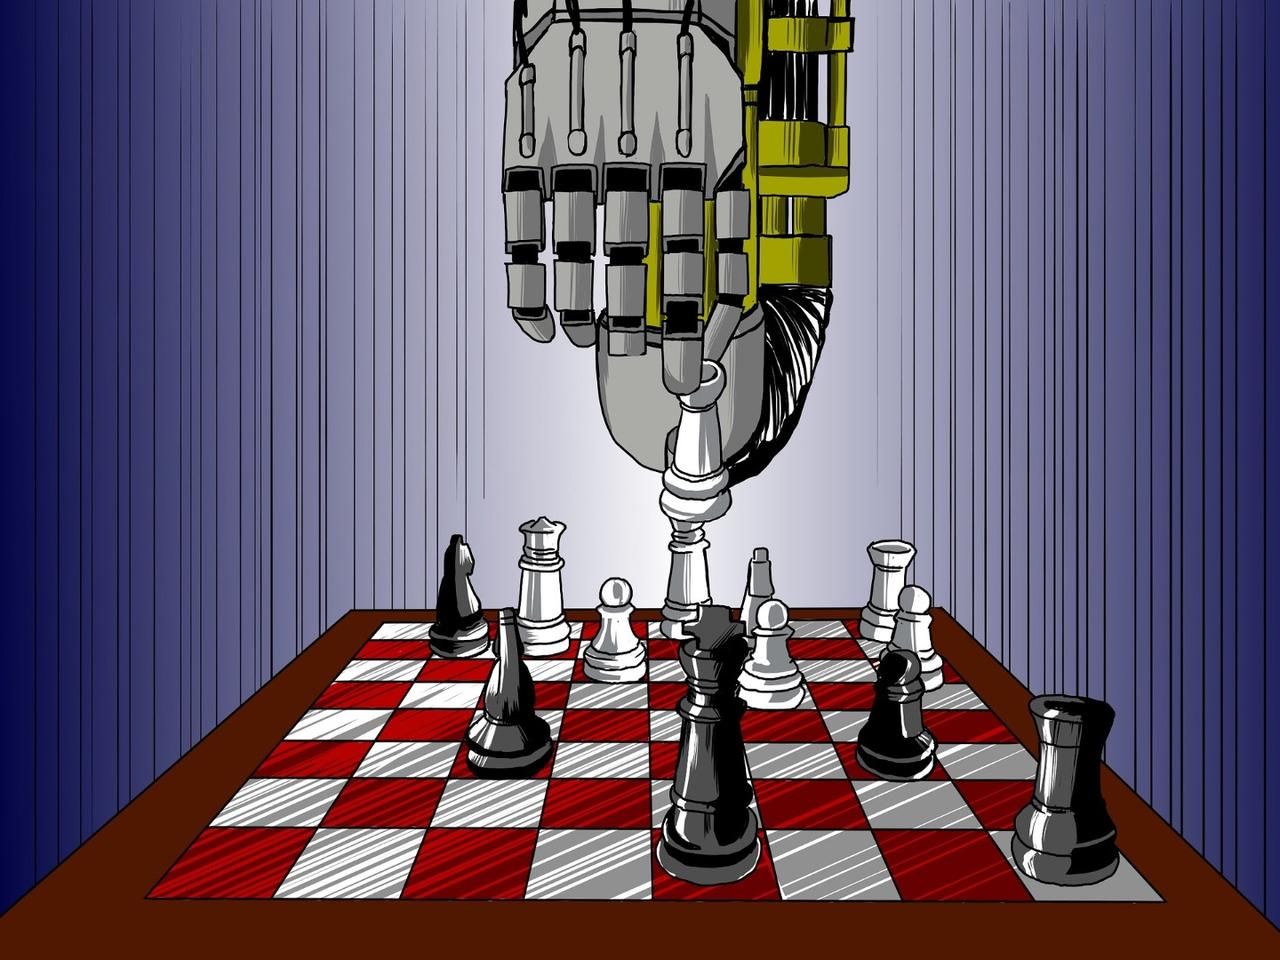 Chess was only the beginning in the realm of computers beating humans at games